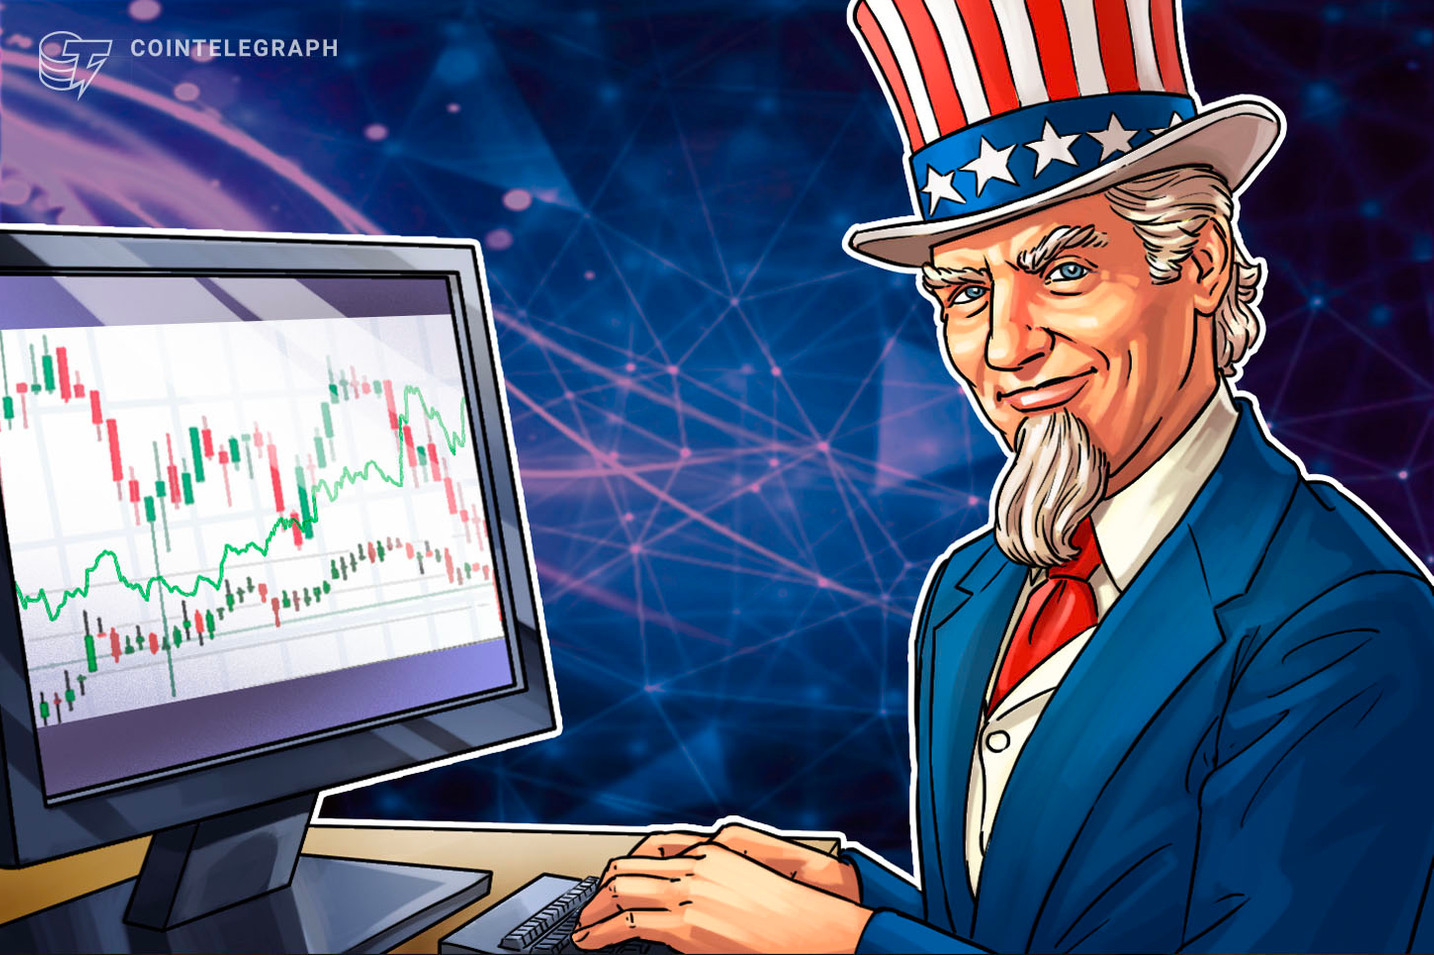 Data: US Traders Most Active Across Major Crypto Exchanges